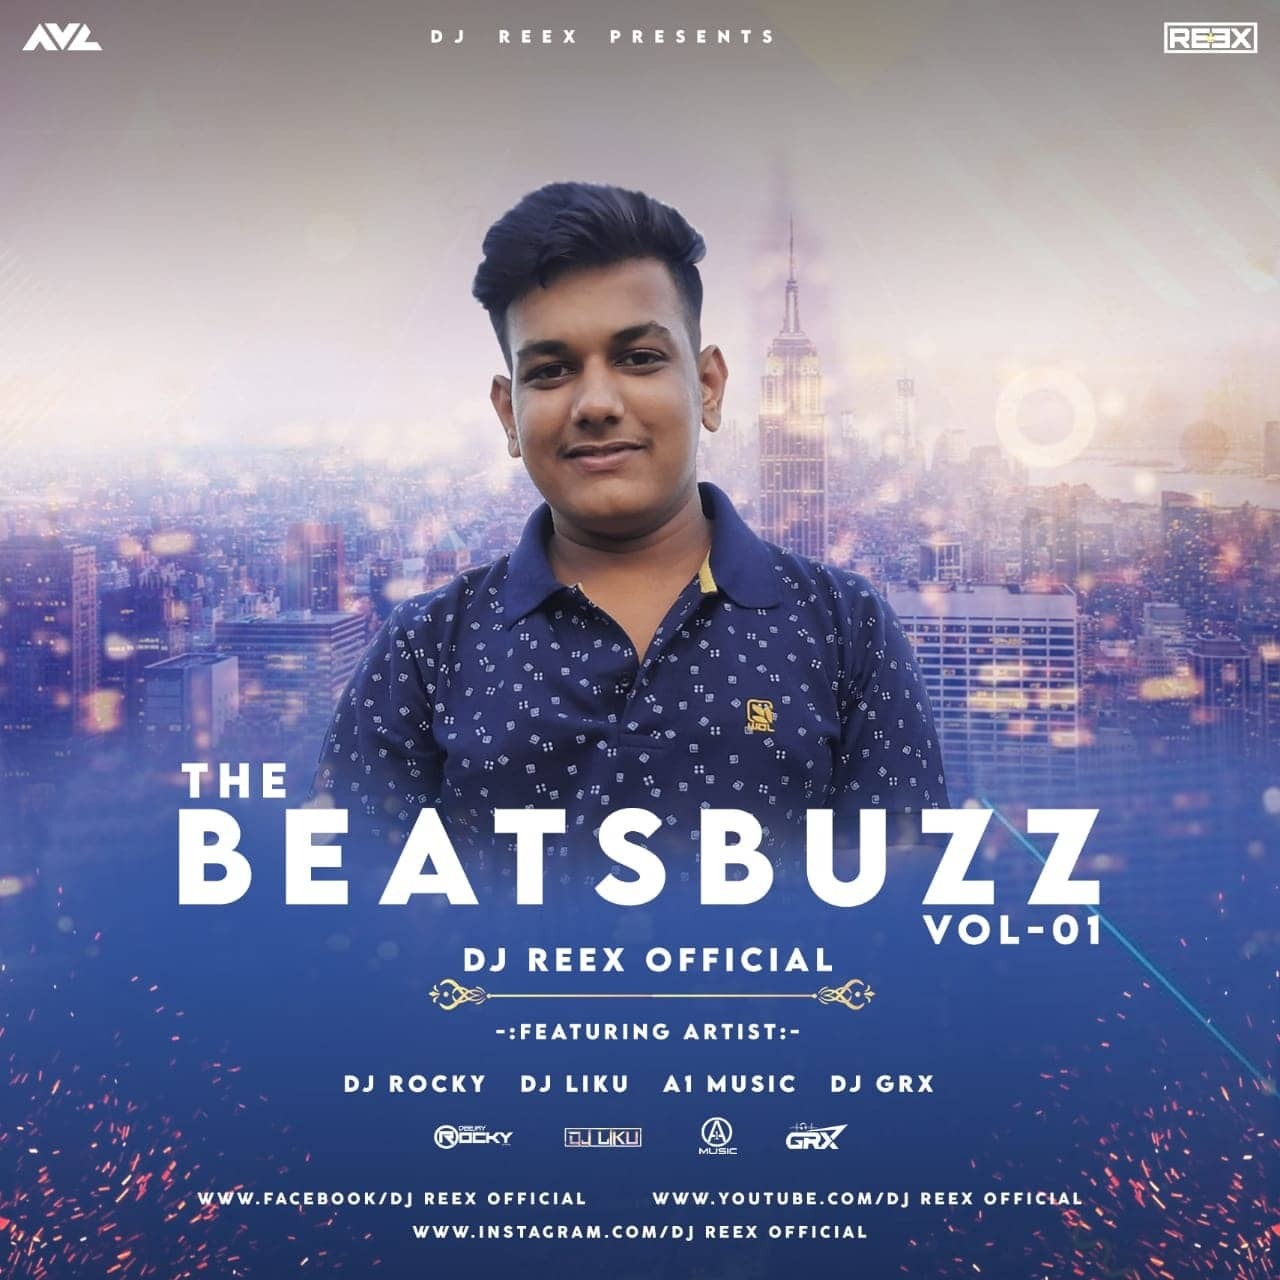 THE BEATSBUZZ VOL 1 - DJ REEX 2020